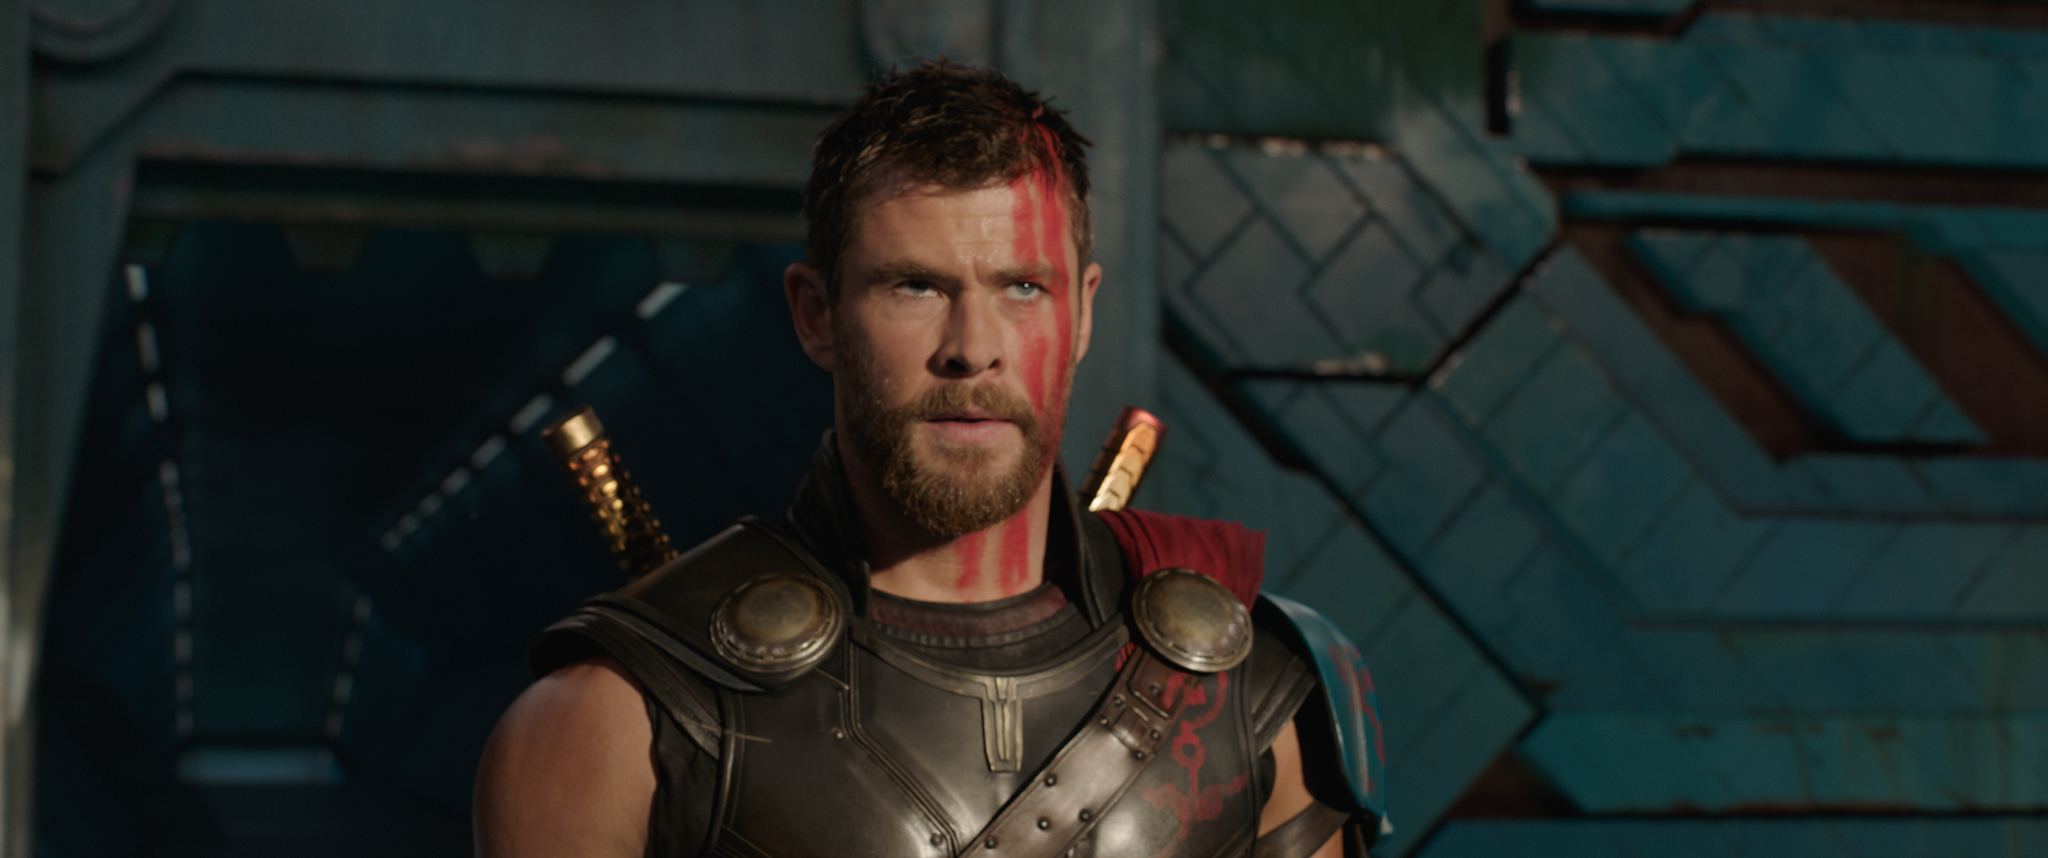 Chris Hemsworth appears to be writing his own Avengers fan fiction